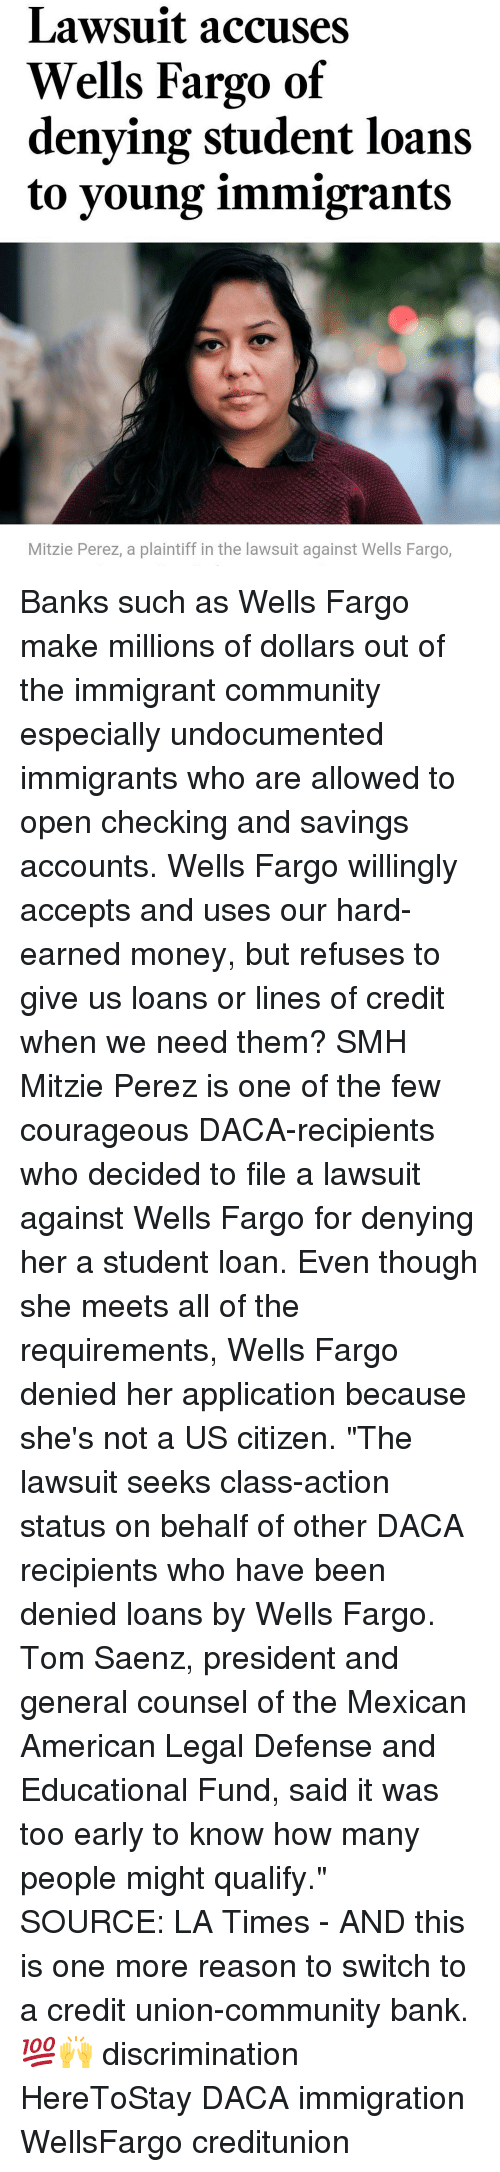 "Memes, Fargo, and Loans: Lawsuit accuses  Wells Fargo of  denying student loans  to young immigrants  Mitzie Perez, a plaintiff in the lawsuit against Wells Fargo, Banks such as Wells Fargo make millions of dollars out of the immigrant community especially undocumented immigrants who are allowed to open checking and savings accounts. Wells Fargo willingly accepts and uses our hard-earned money, but refuses to give us loans or lines of credit when we need them? SMH Mitzie Perez is one of the few courageous DACA-recipients who decided to file a lawsuit against Wells Fargo for denying her a student loan. Even though she meets all of the requirements, Wells Fargo denied her application because she's not a US citizen. ""The lawsuit seeks class-action status on behalf of other DACA recipients who have been denied loans by Wells Fargo. Tom Saenz, president and general counsel of the Mexican American Legal Defense and Educational Fund, said it was too early to know how many people might qualify."" SOURCE: LA Times - AND this is one more reason to switch to a credit union-community bank. 💯🙌 discrimination HereToStay DACA immigration WellsFargo creditunion"